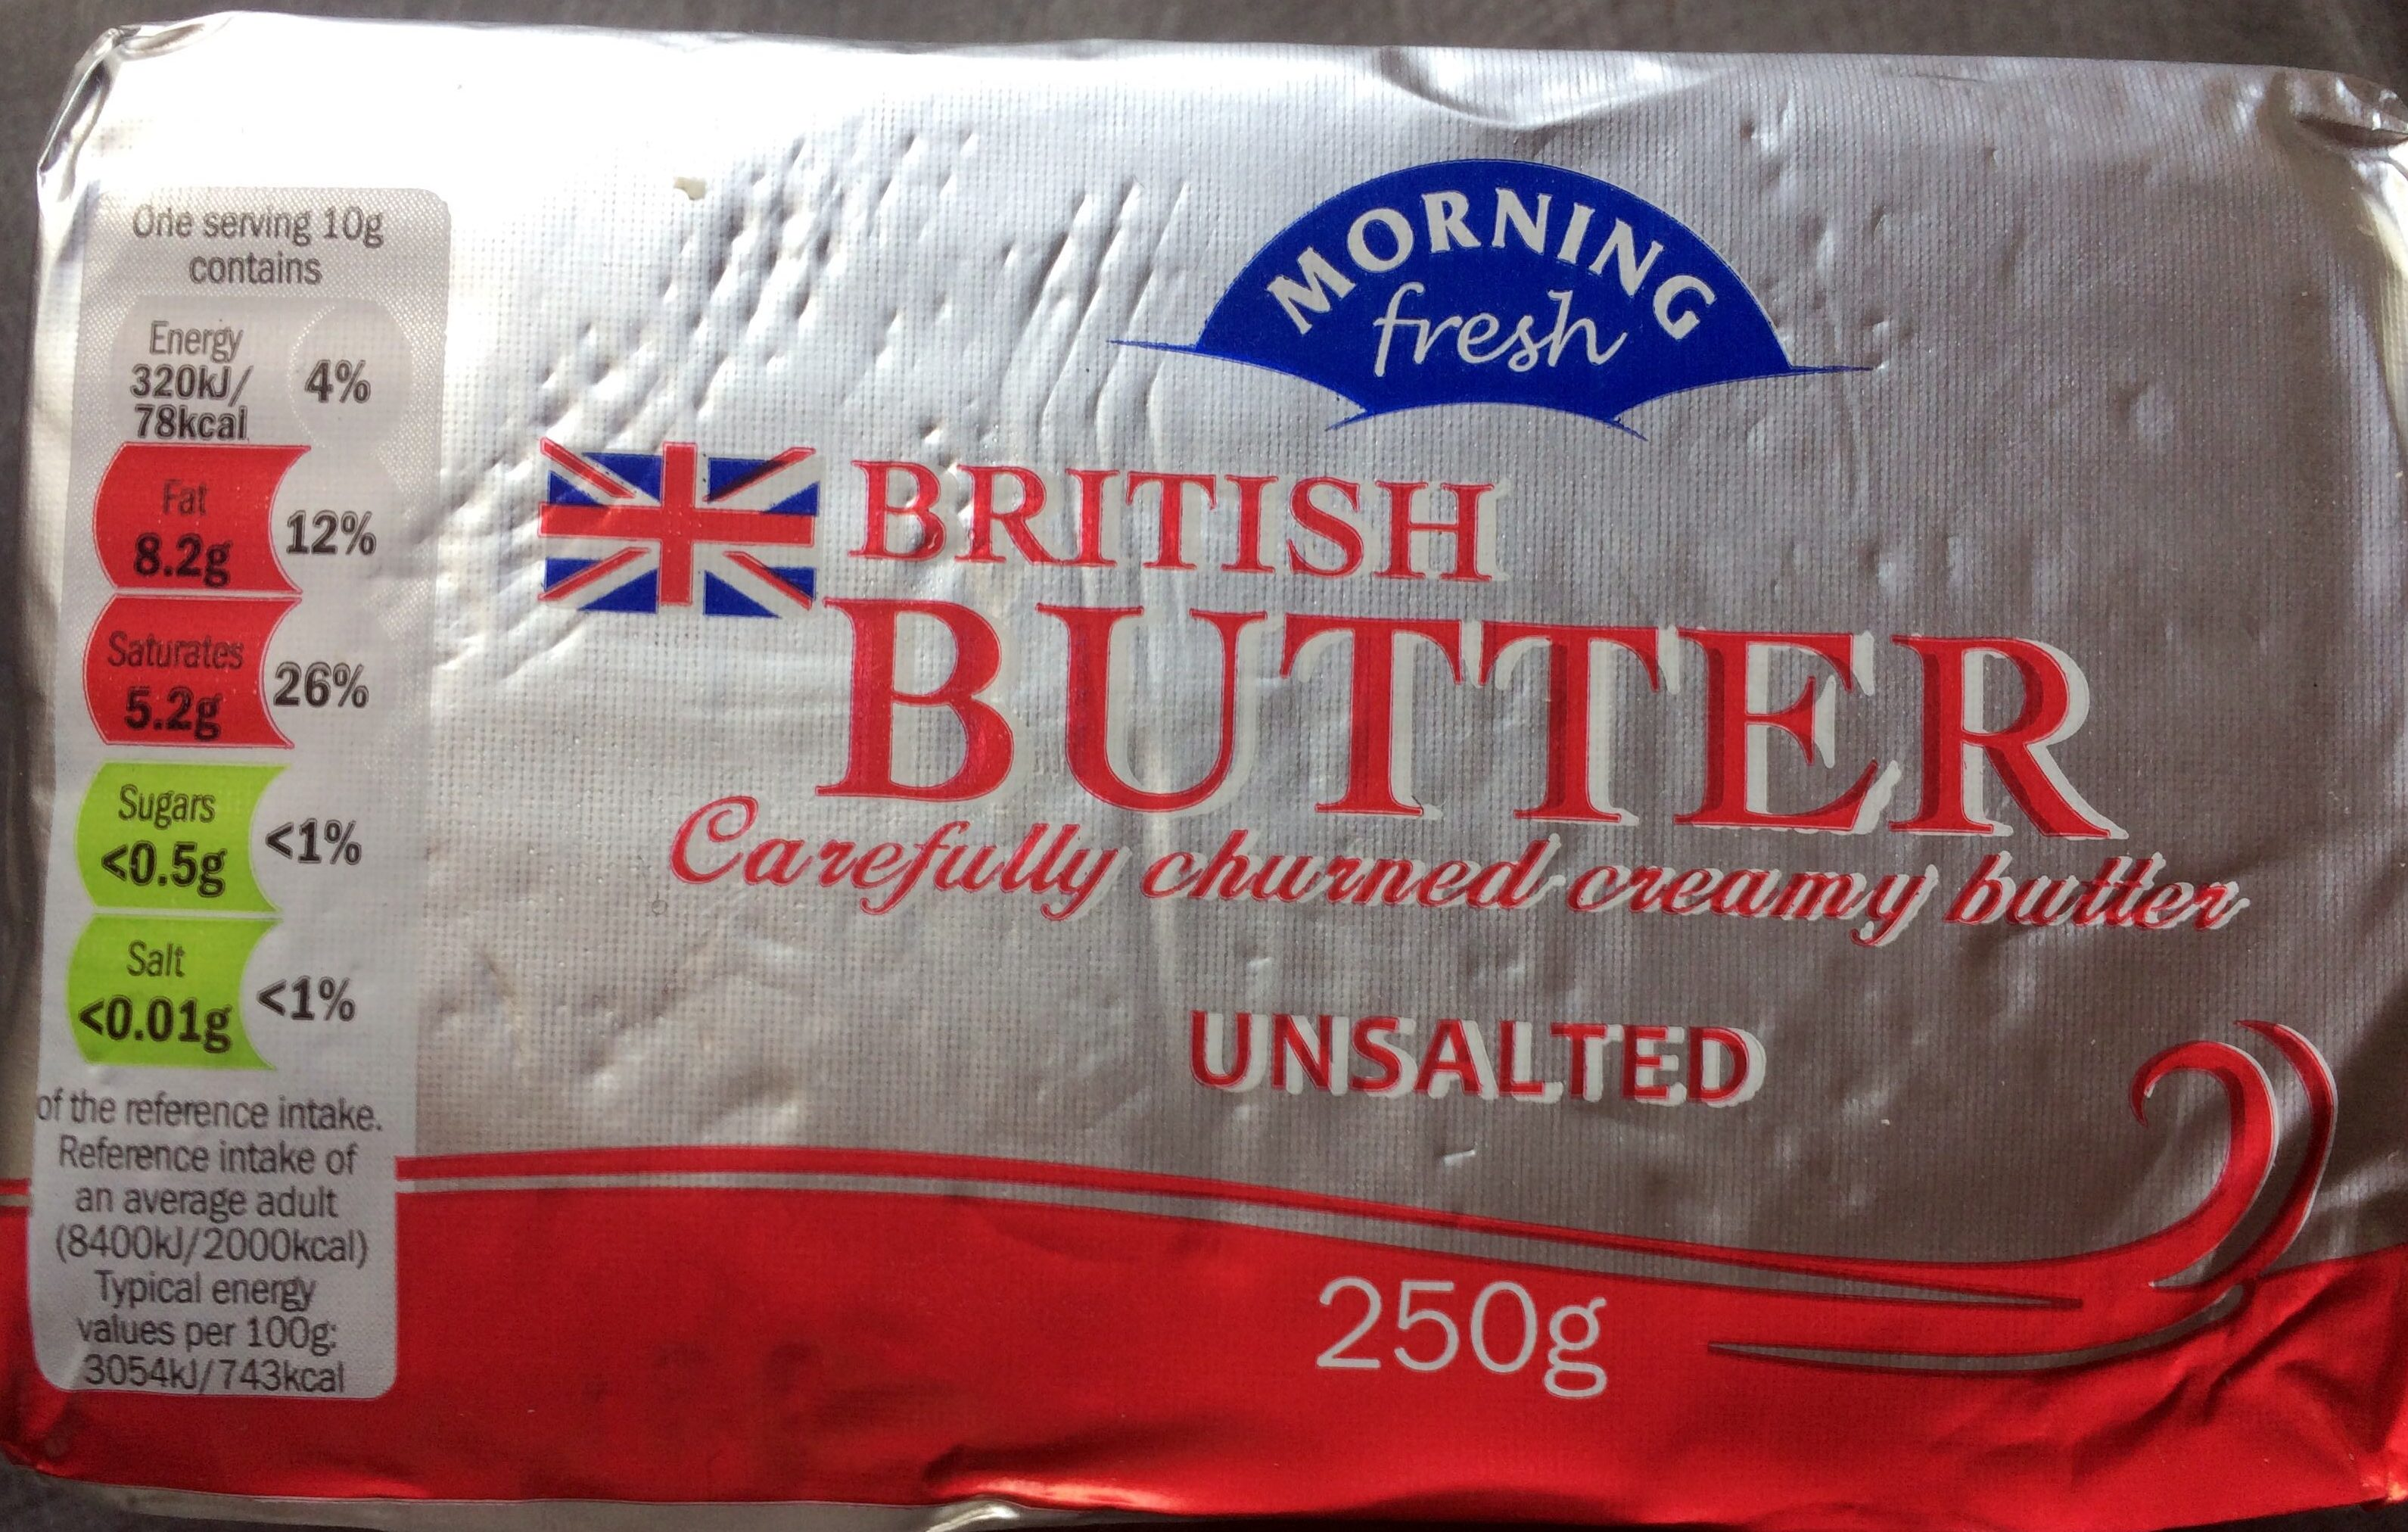 British butter - unsalted - Product